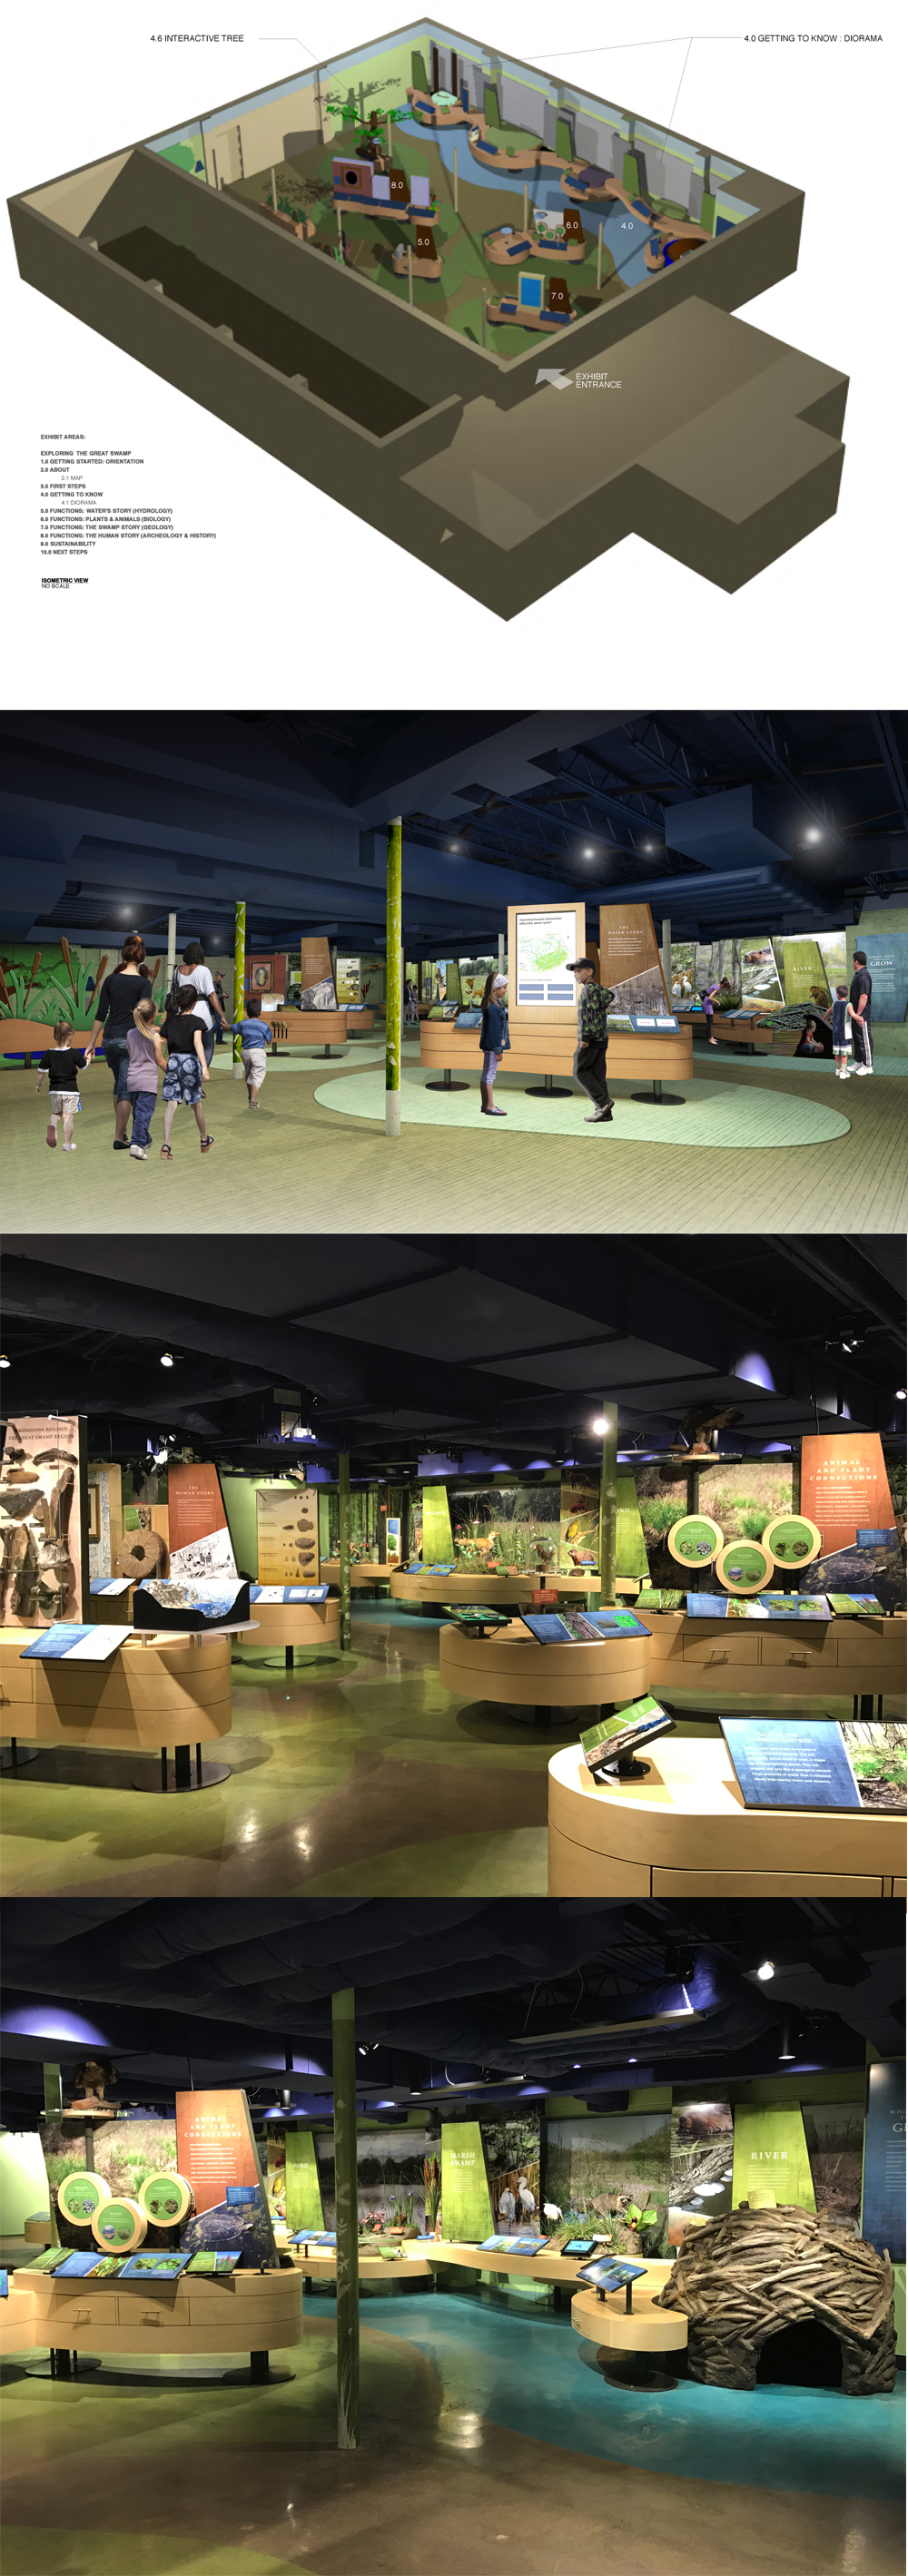 Isometric view of exhibit concept, final design rendering, and photos of installed exhibit.